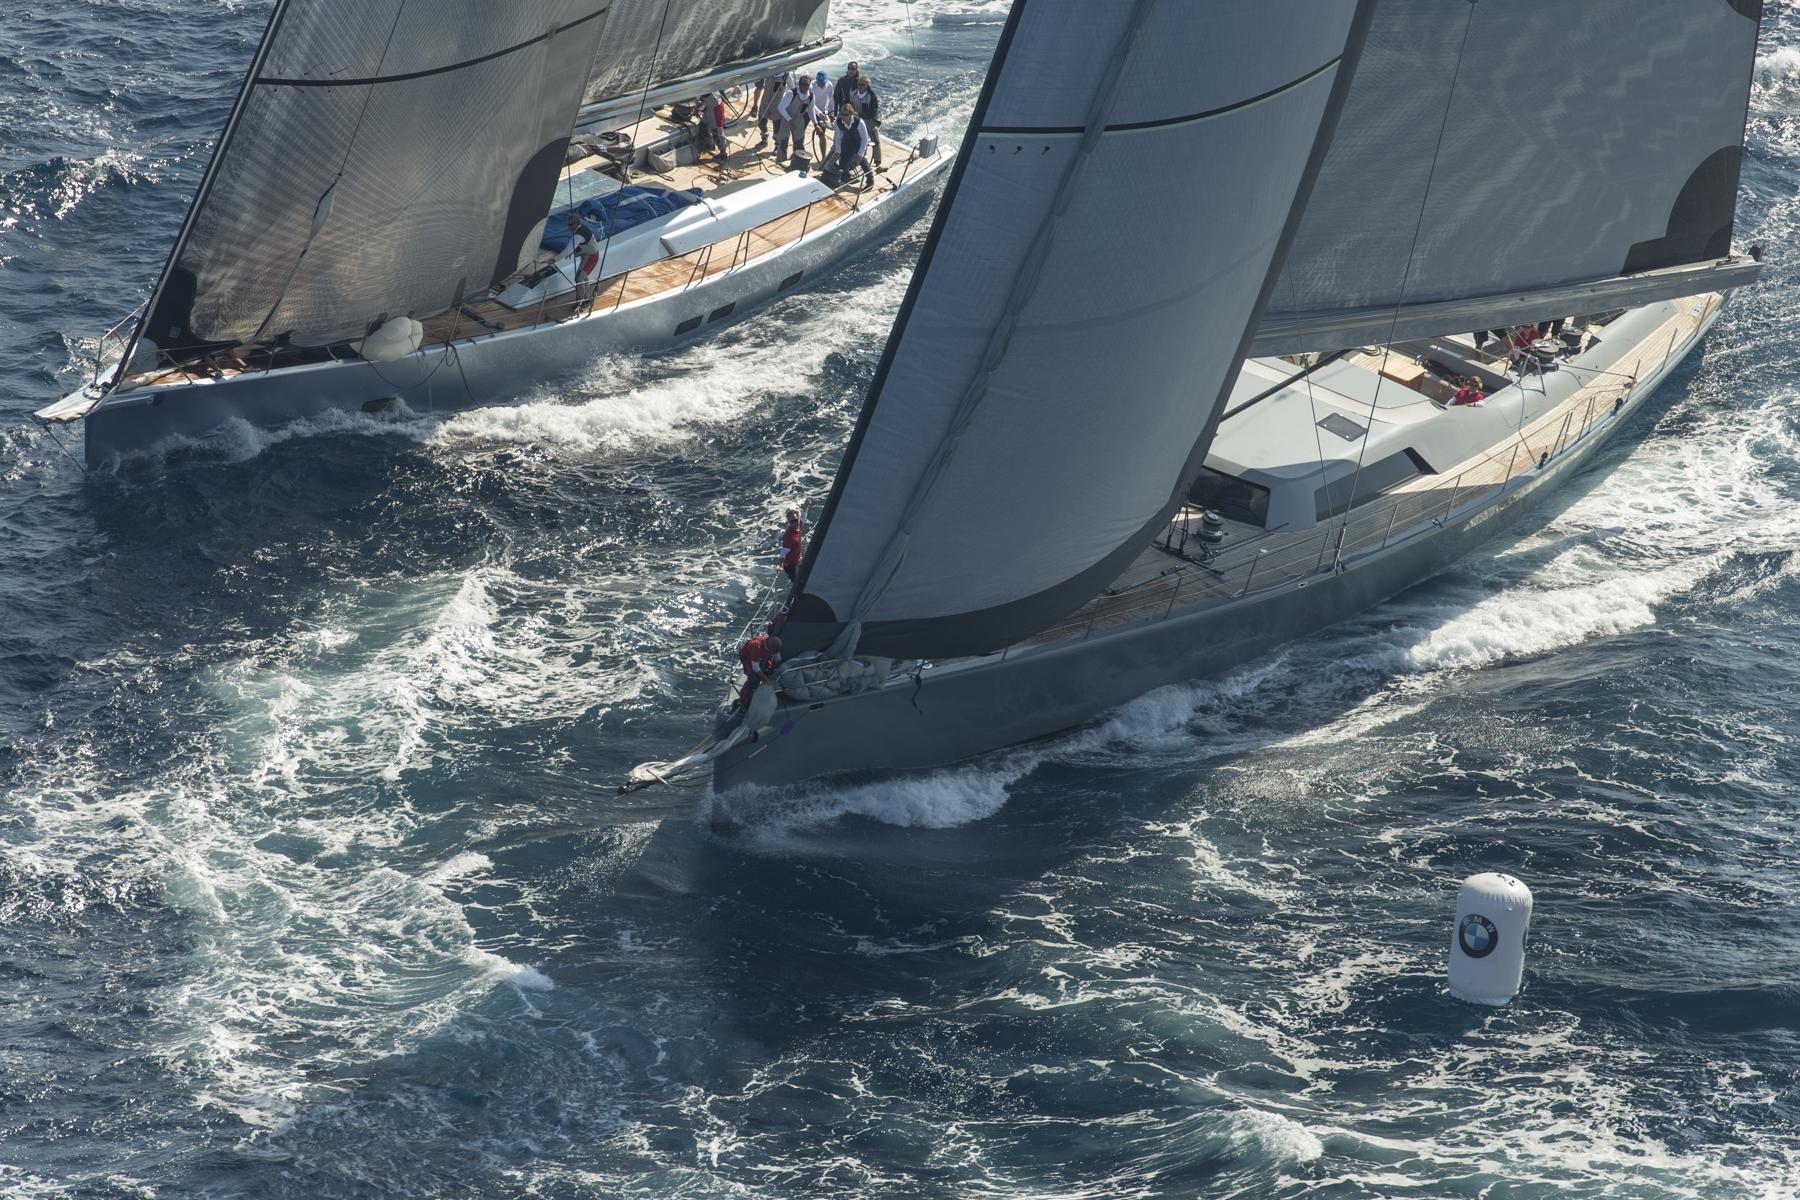 ryokan 2 and kenora racing 2013 ph gilles martin raget4